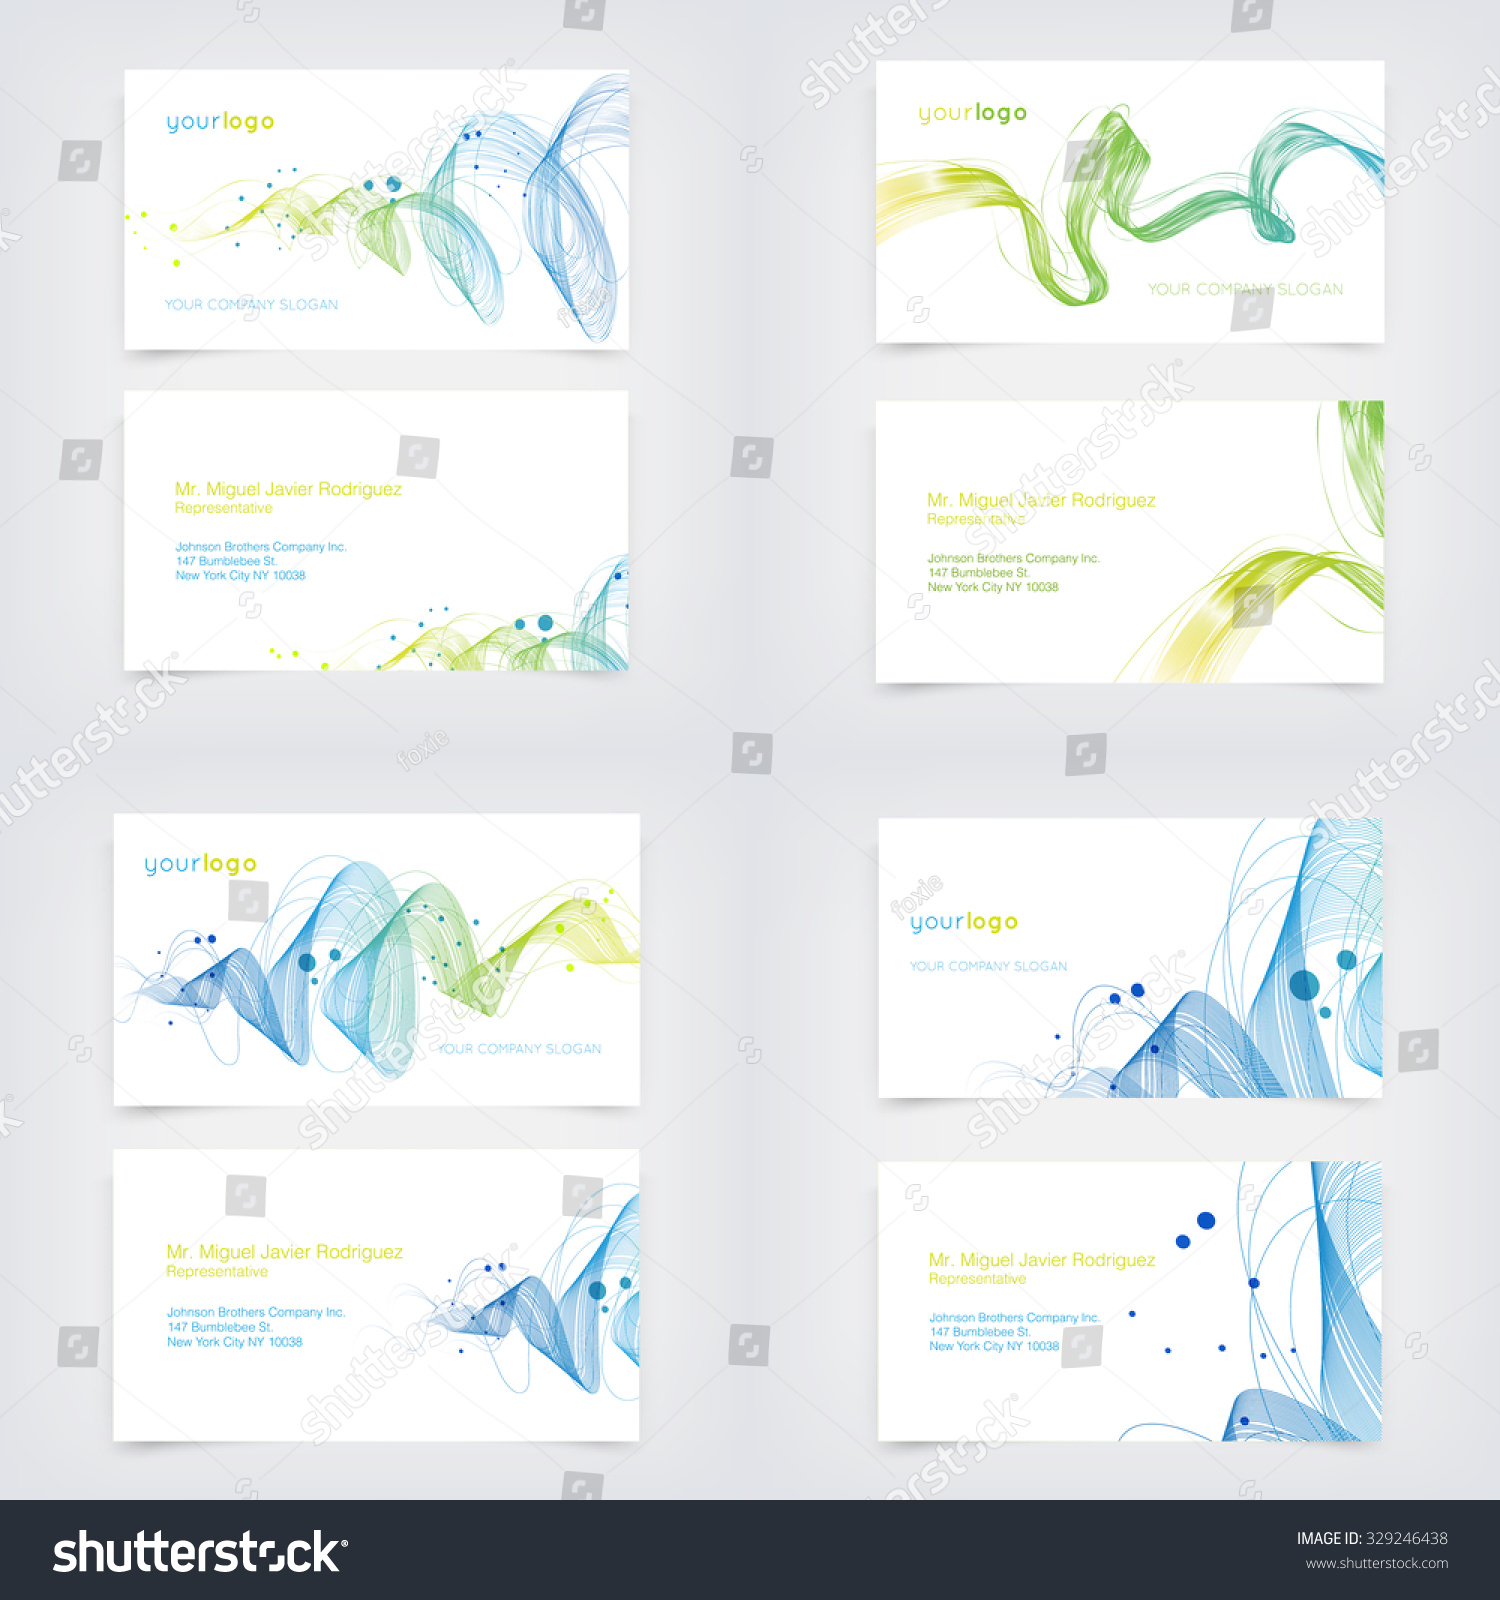 Vector business card design templates collection stock vector vector business card design templates collection with dynamic curly wave backgrounds reheart Gallery